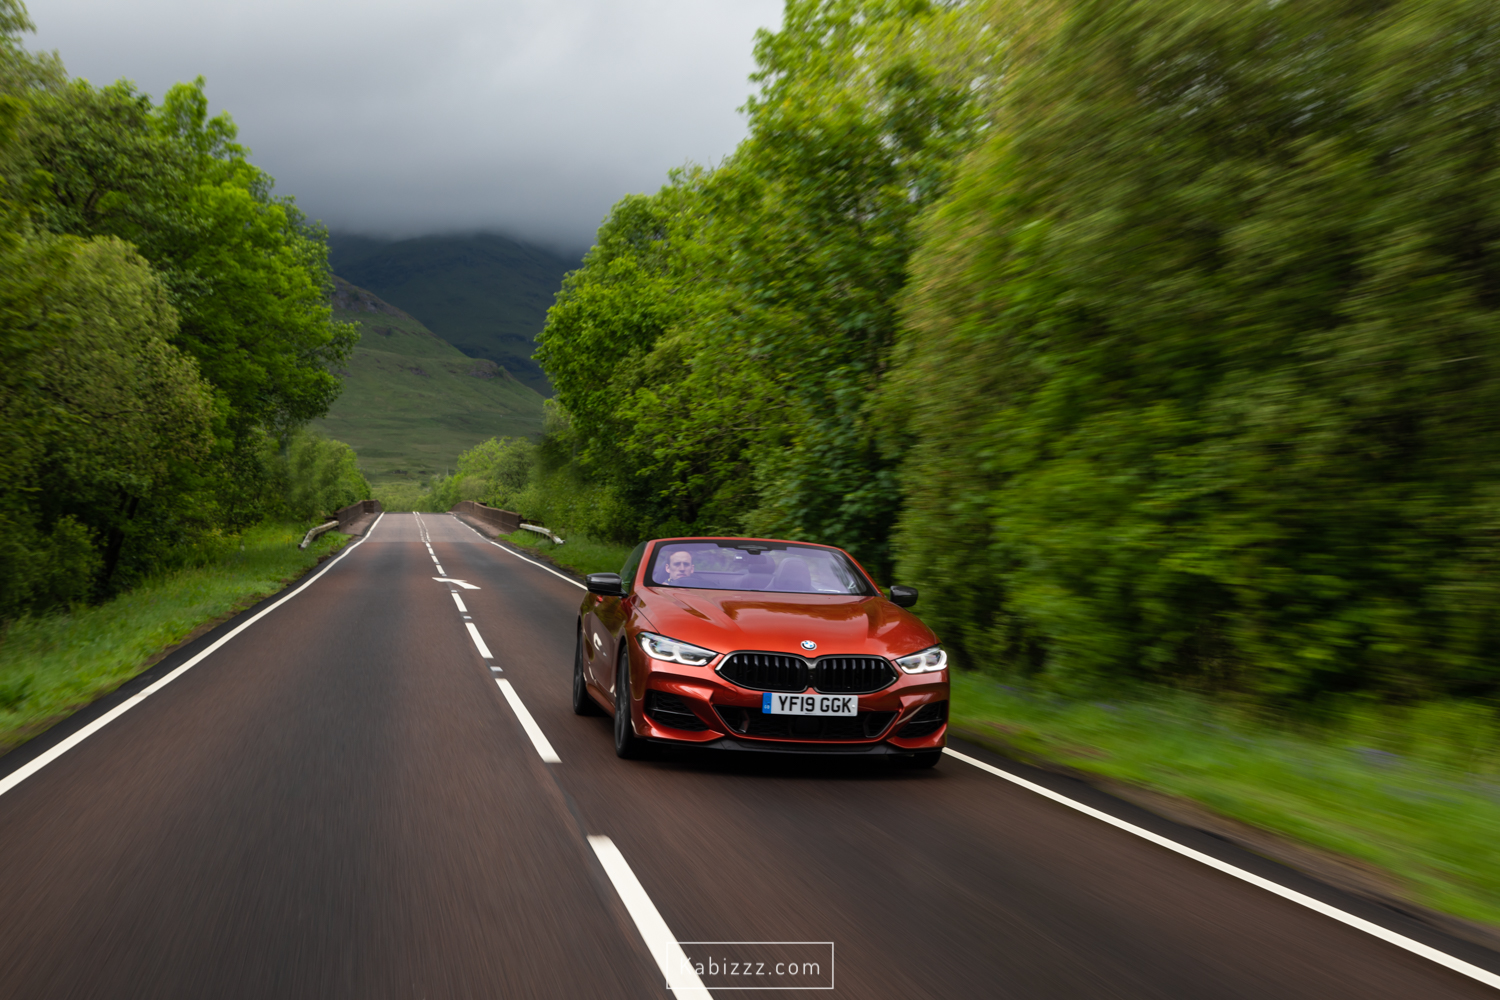 850i_automotive_photography_kabizzz-3.jpg